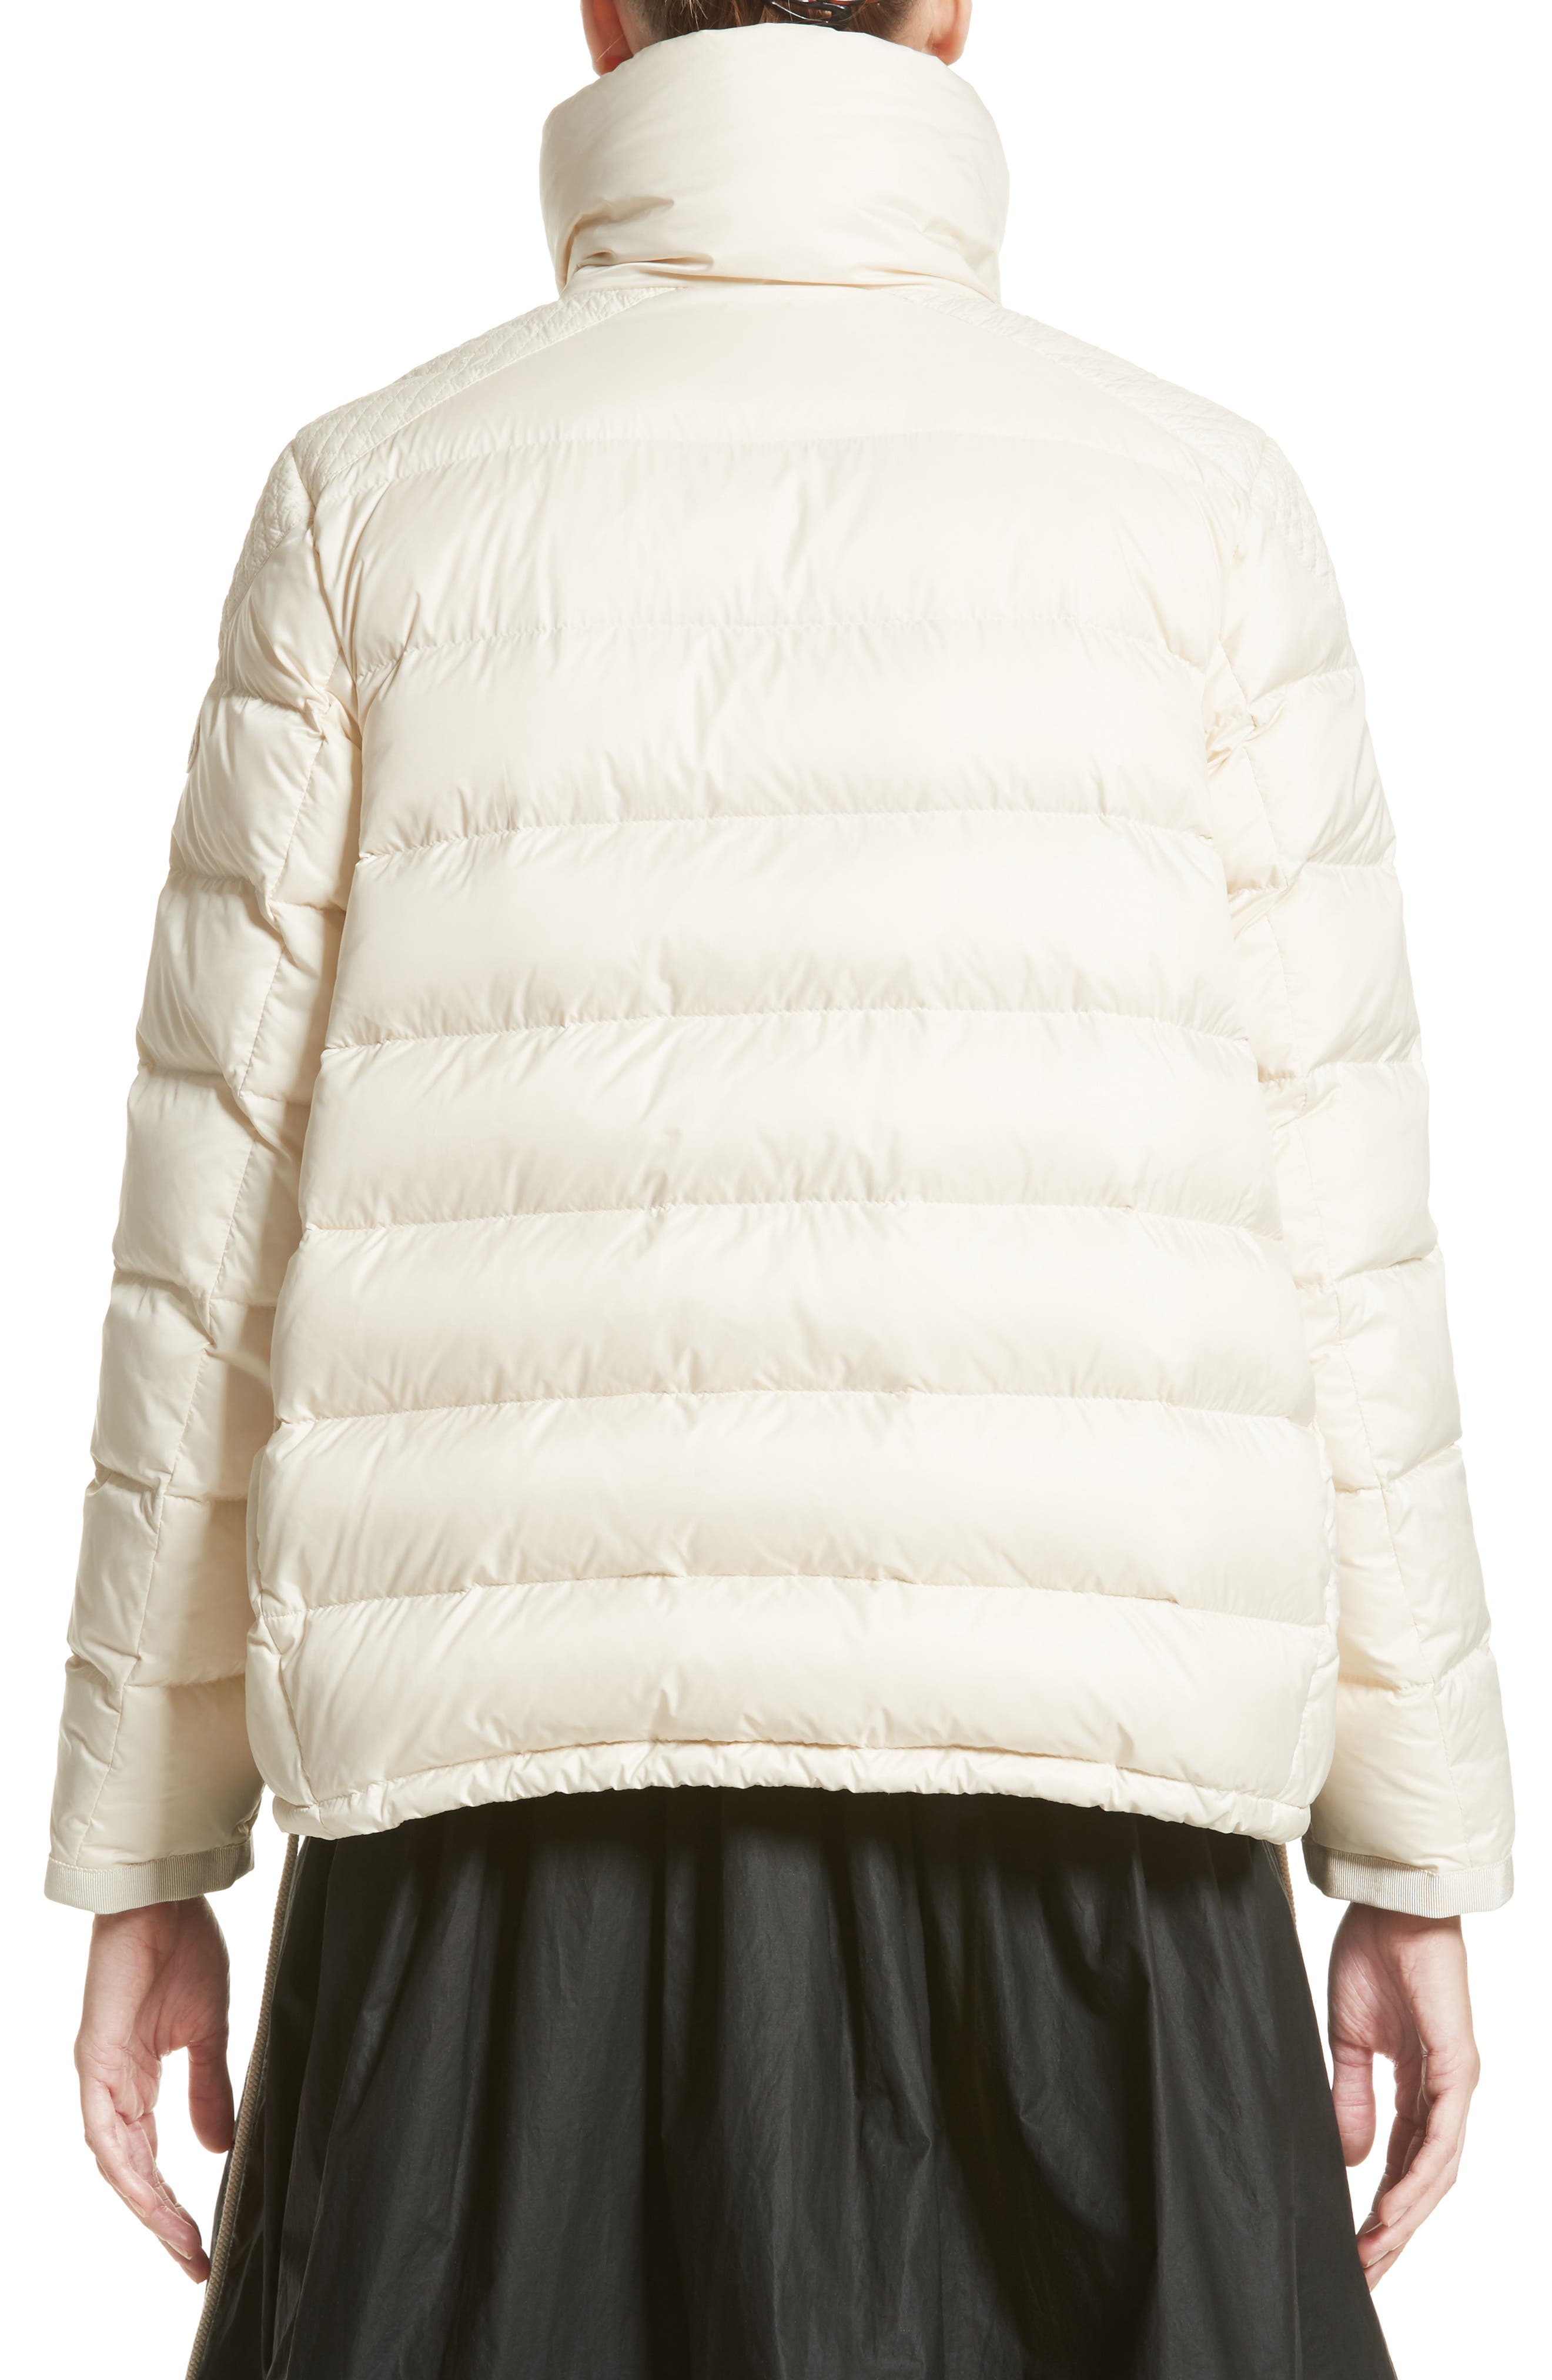 Margaret Down Puffer Jacket,                             Alternate thumbnail 2, color,                             Cream